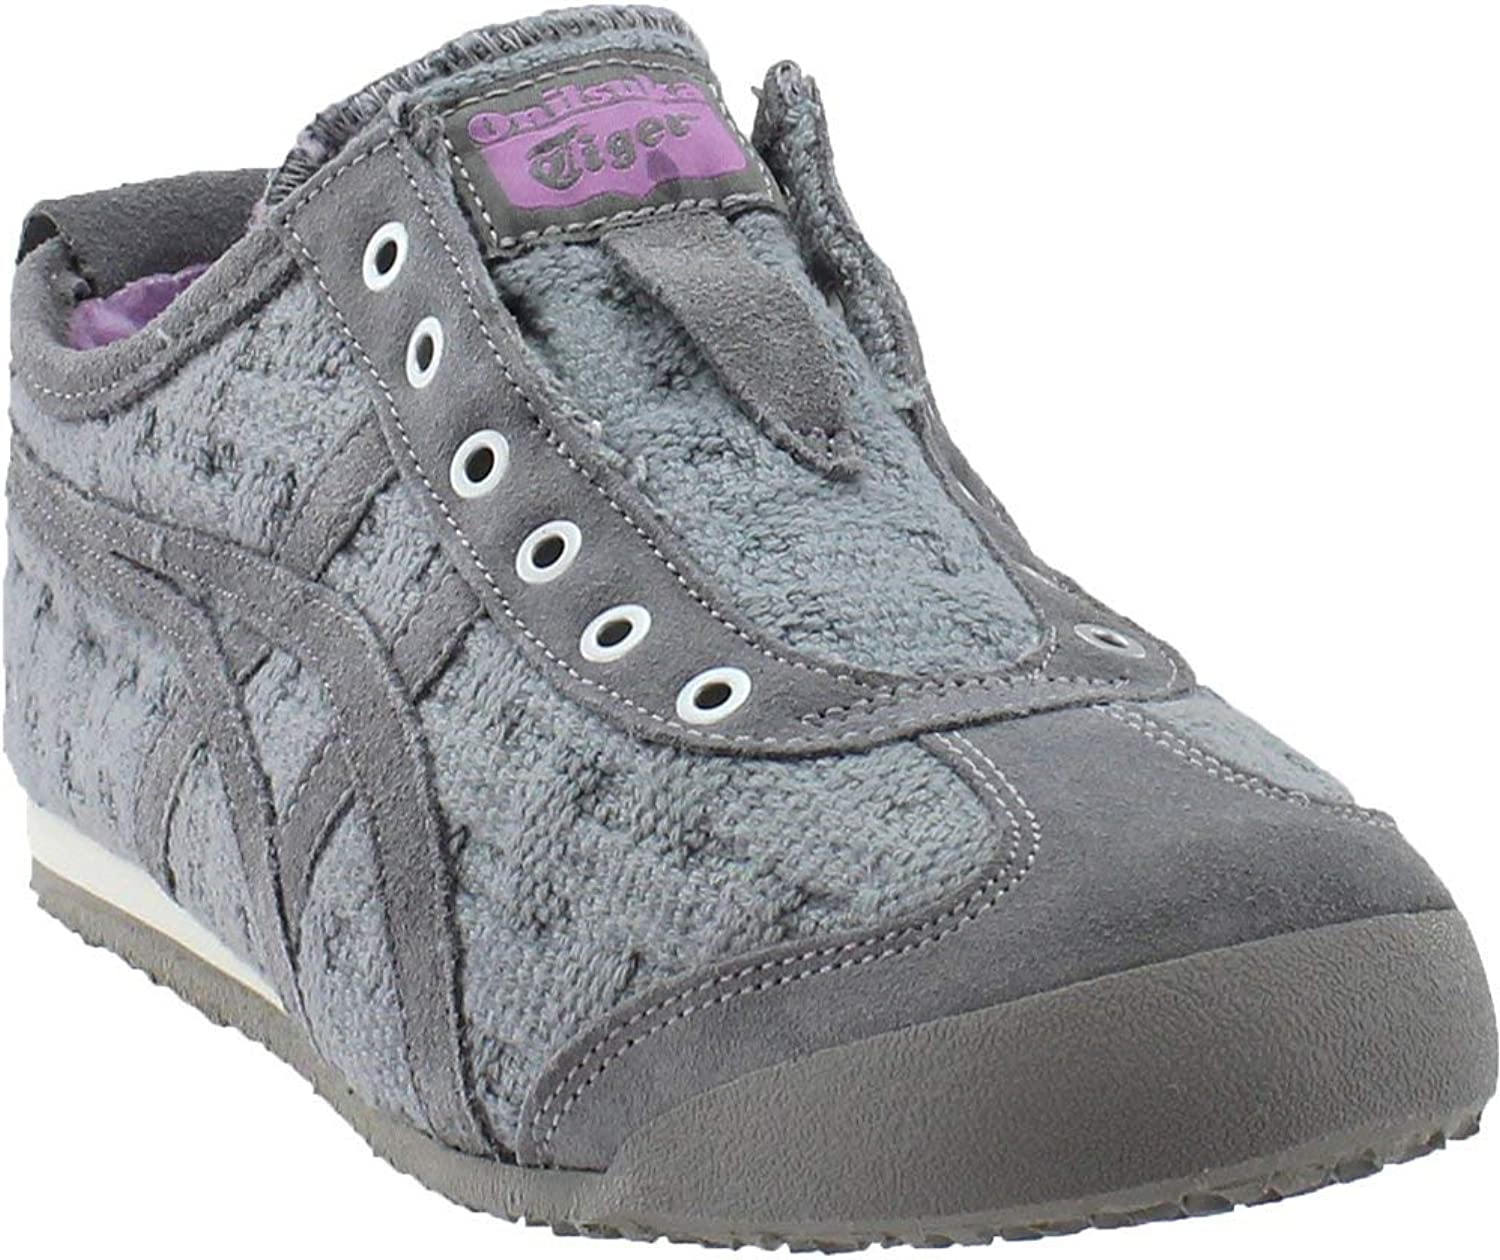 ASICS Onitsuka Tiger Women's Mexico 66 Slip-On shoes